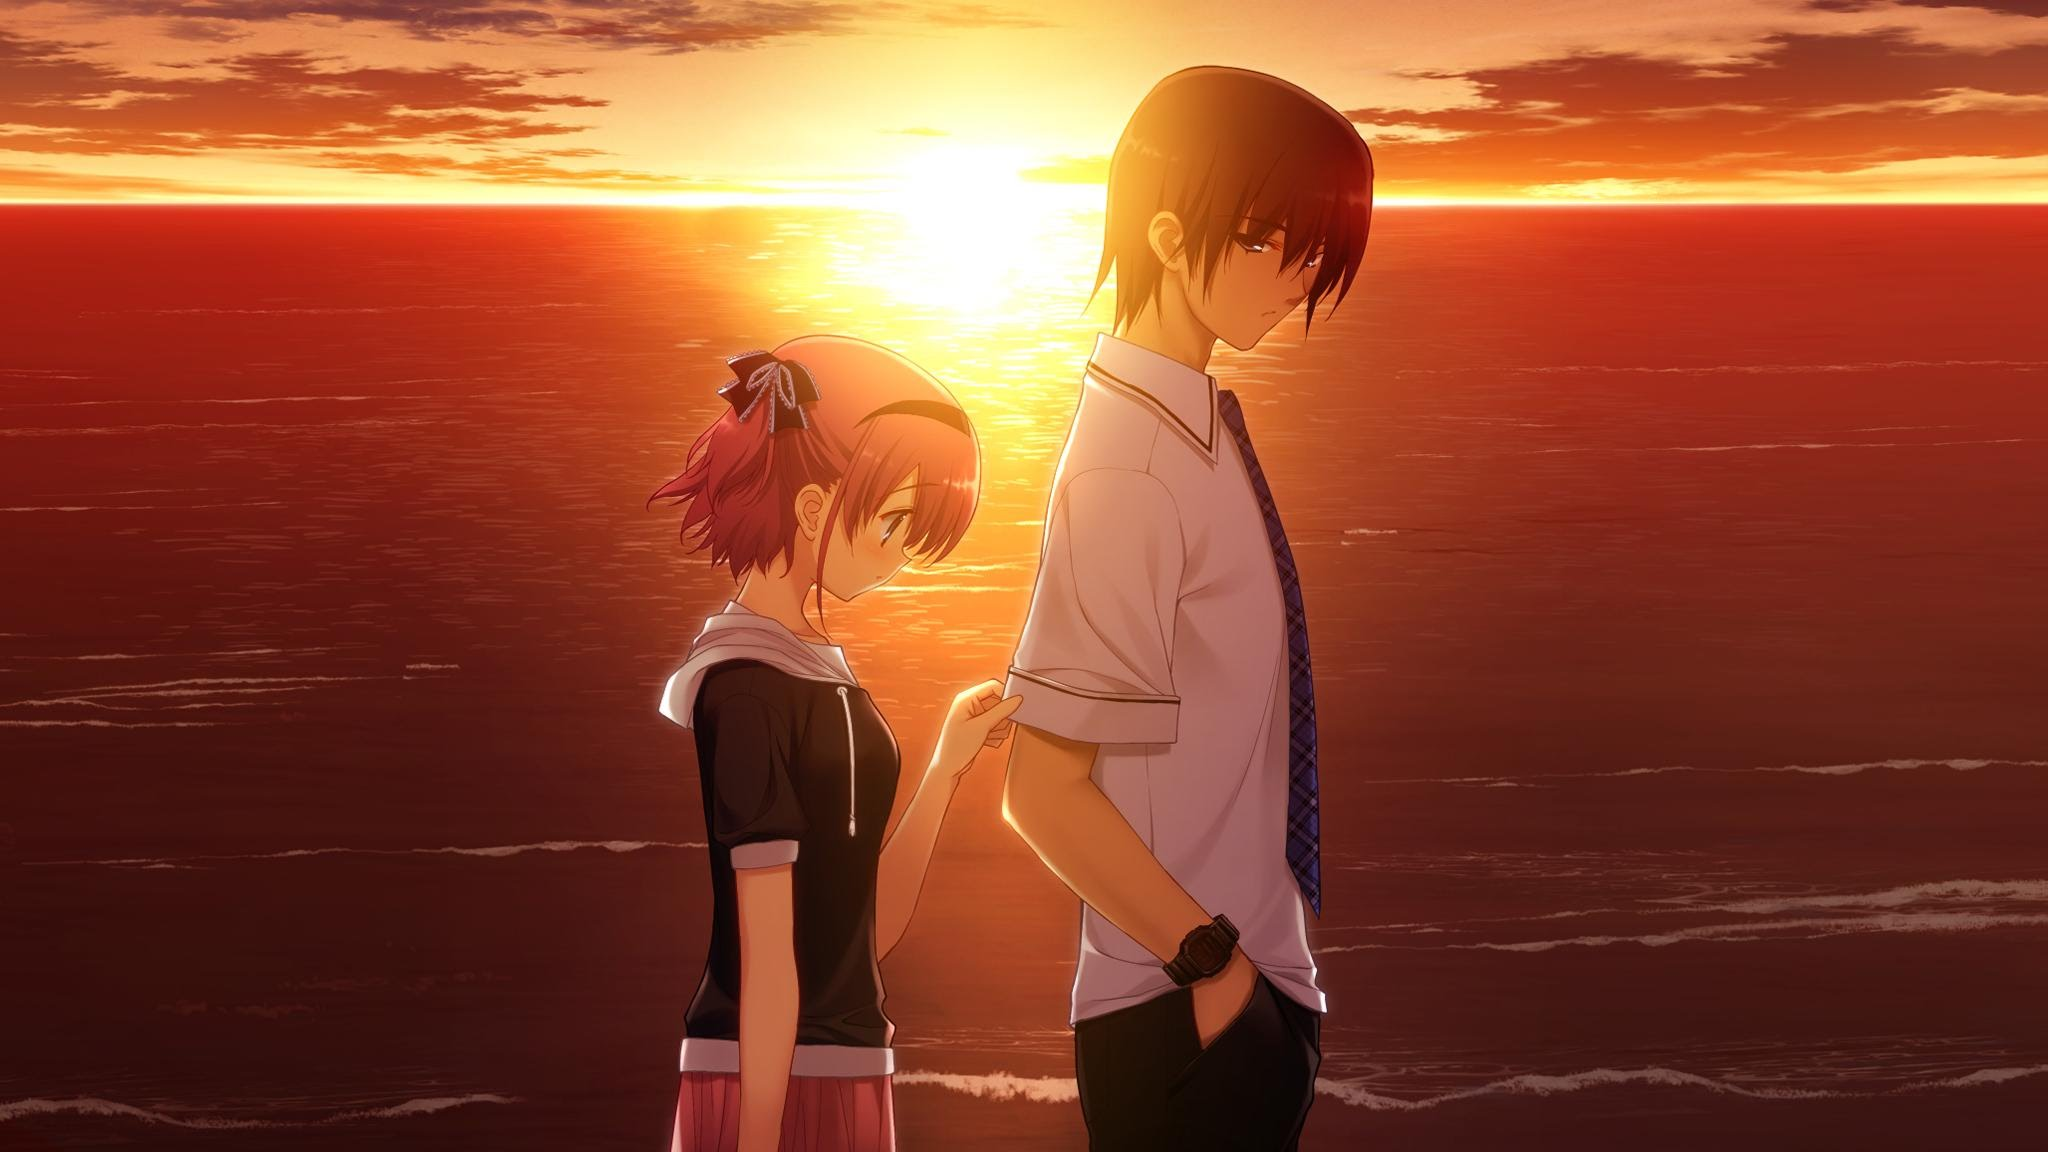 Sad Couple In The Sunset Wallpaper Cute Anime Couples 2017